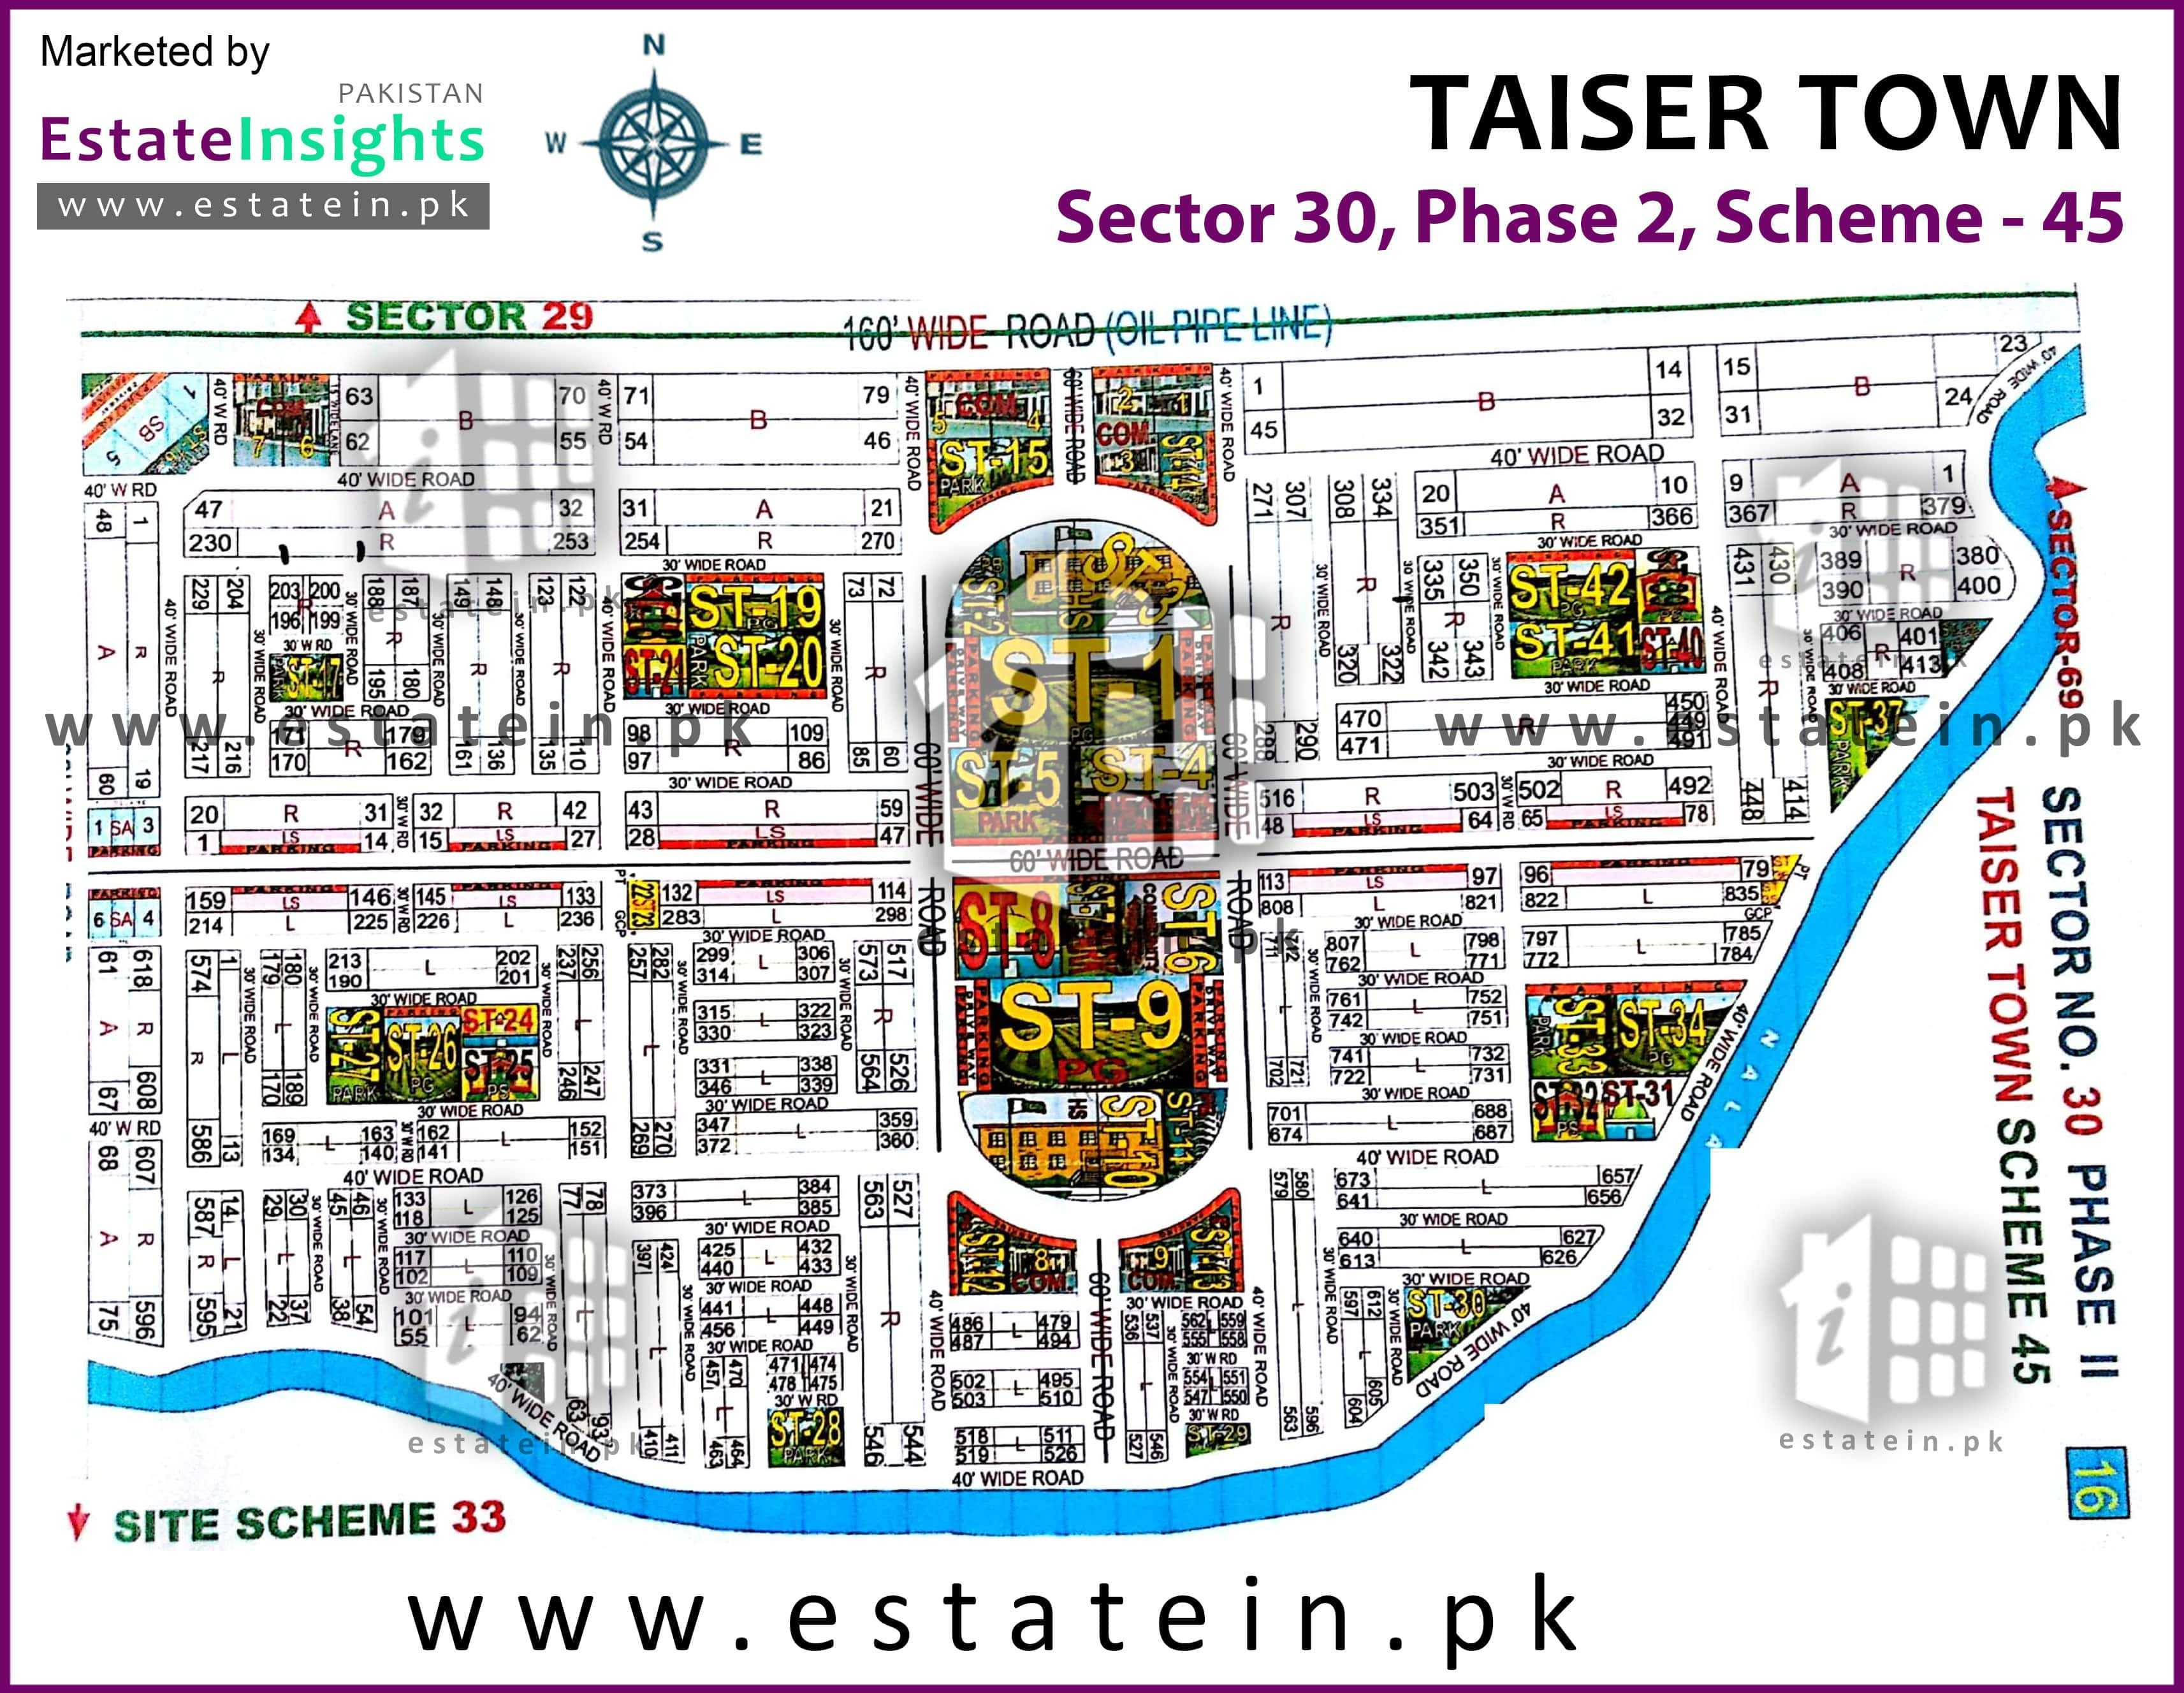 Site Plan of Sector 30 of Taiser Town Phase II